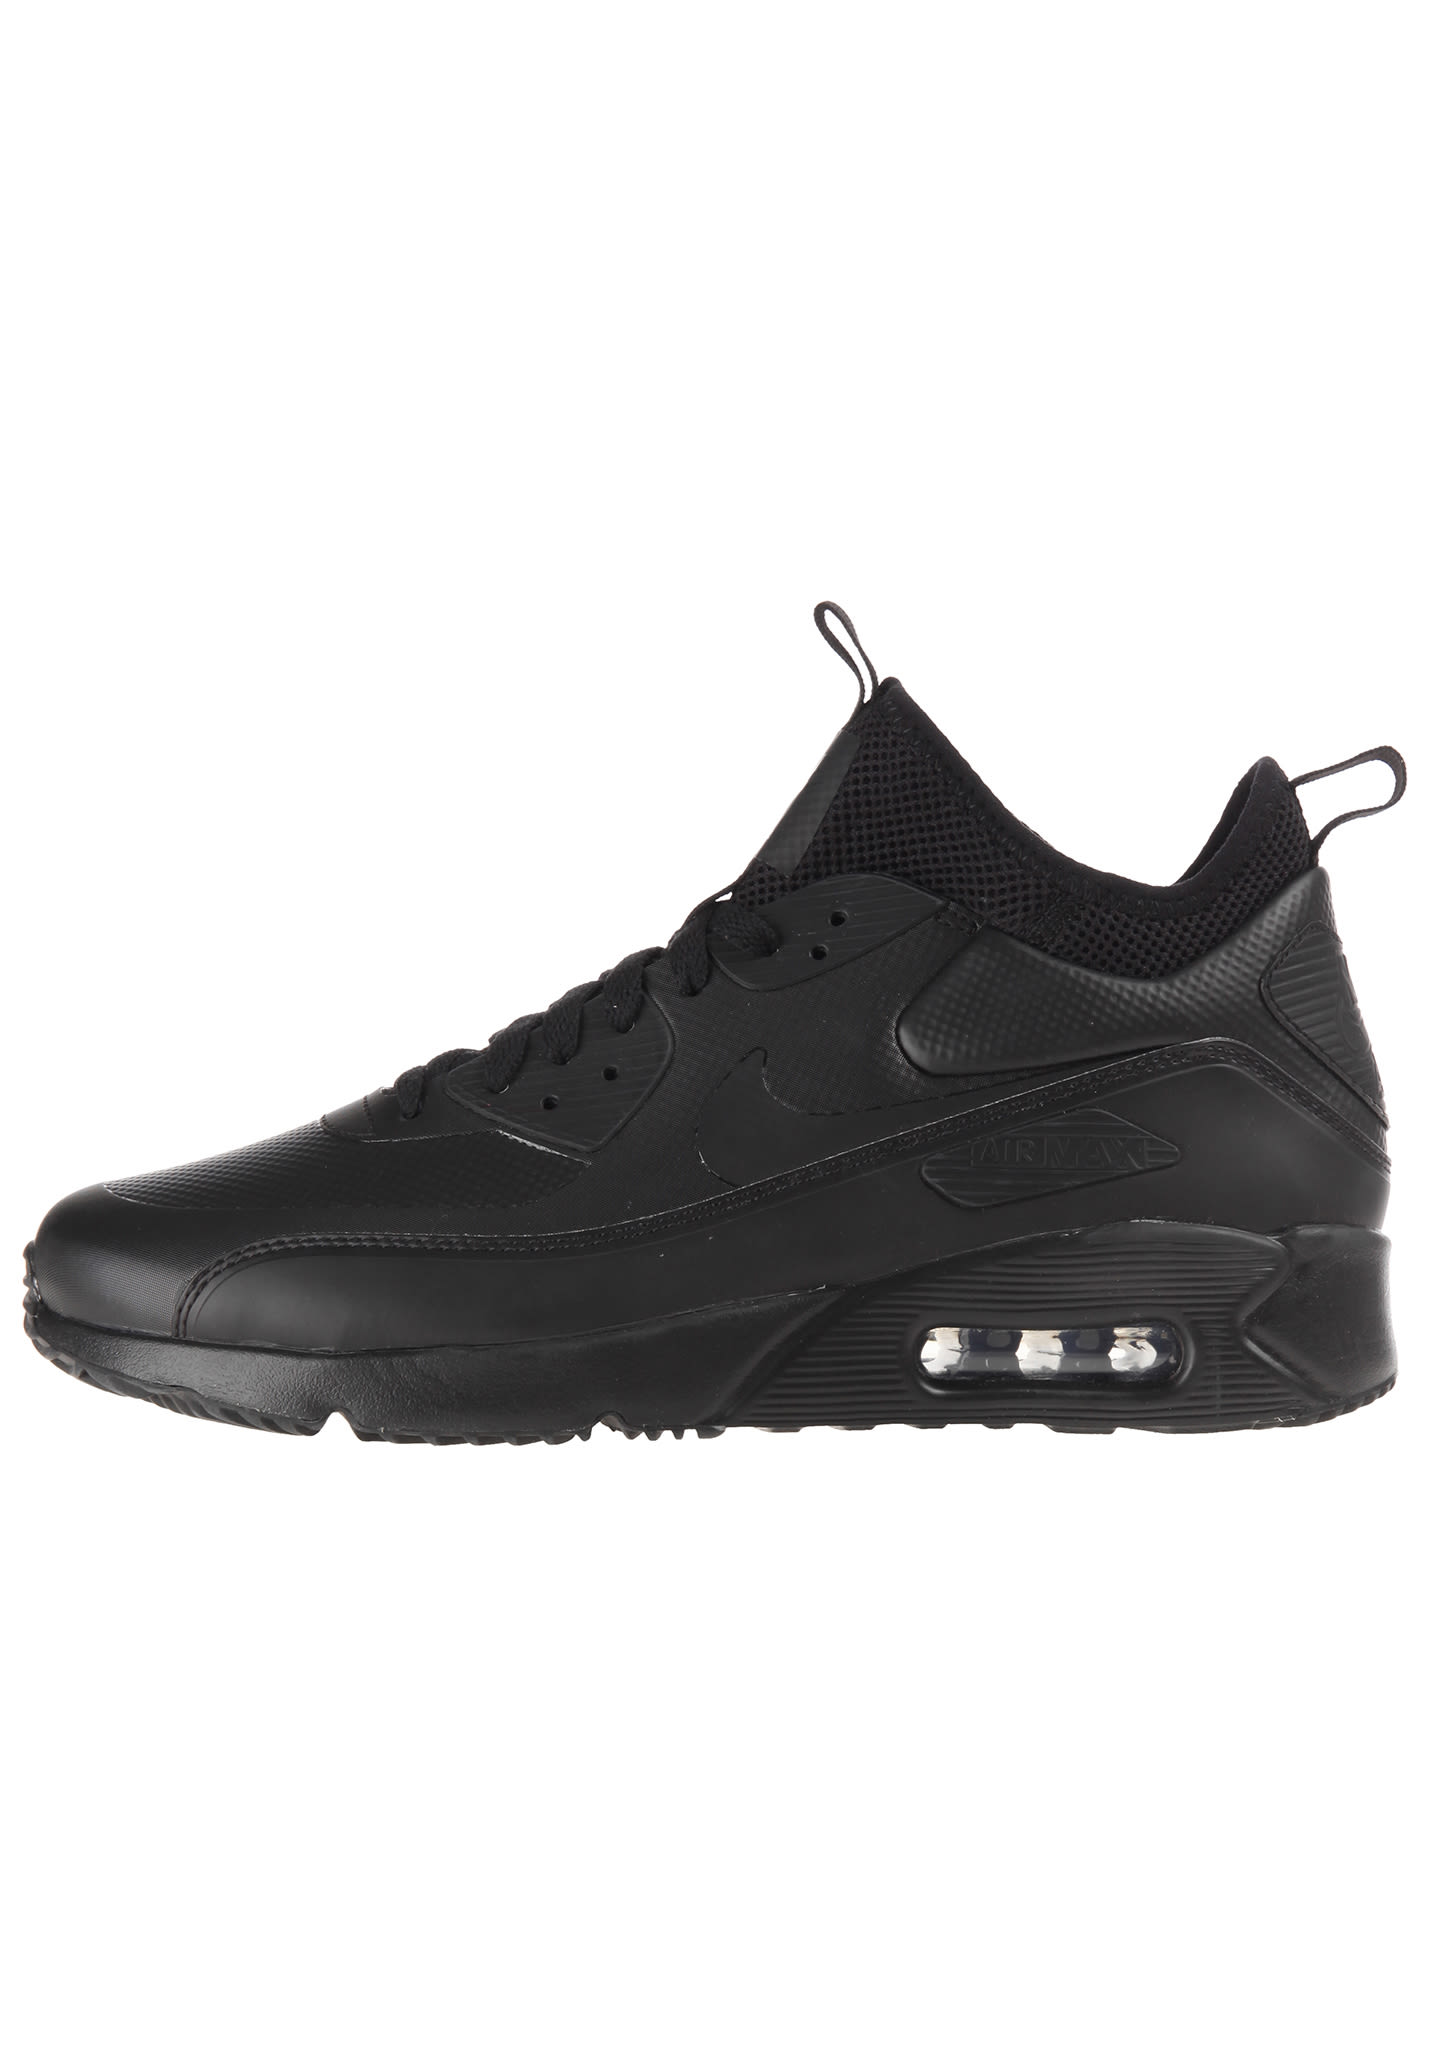 new concept 2eb47 10c83 NIKE SPORTSWEAR Air Max 90 Ultra Mid Winter - Sneaker für Herren - Schwarz  - Planet Sports